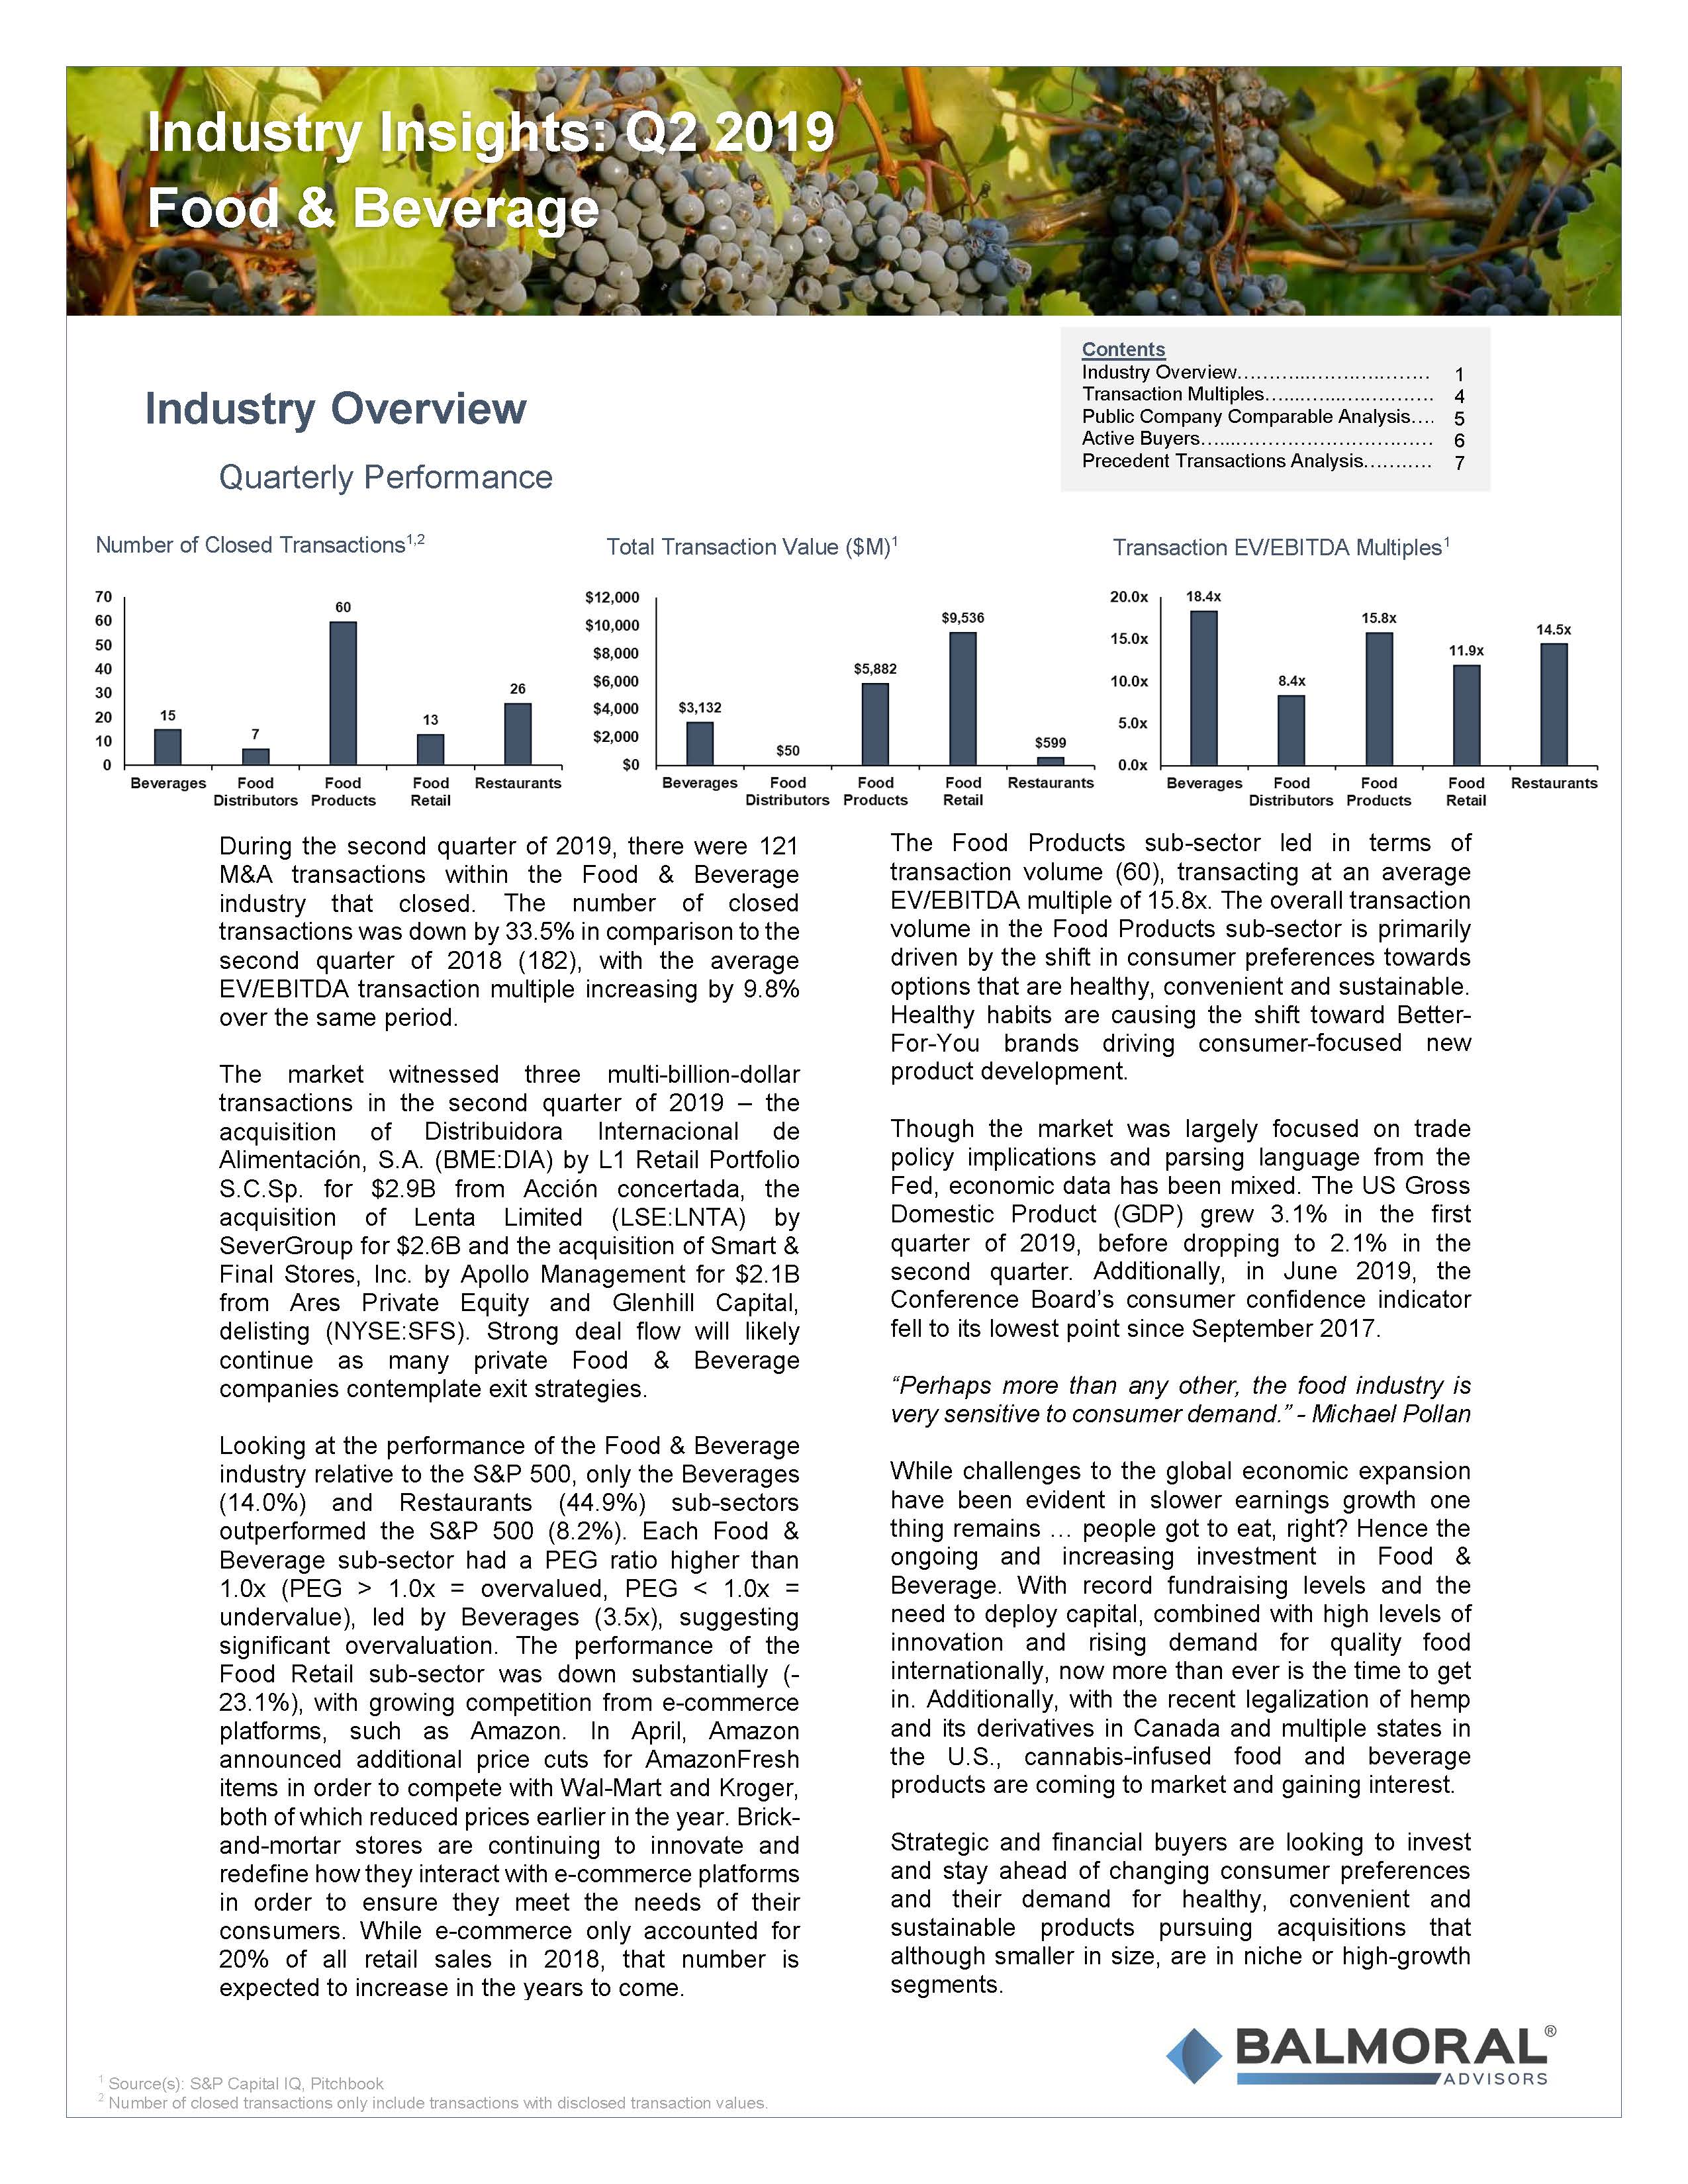 balmoral-newsletter-food-beverage-2019-q2-v4_page_1